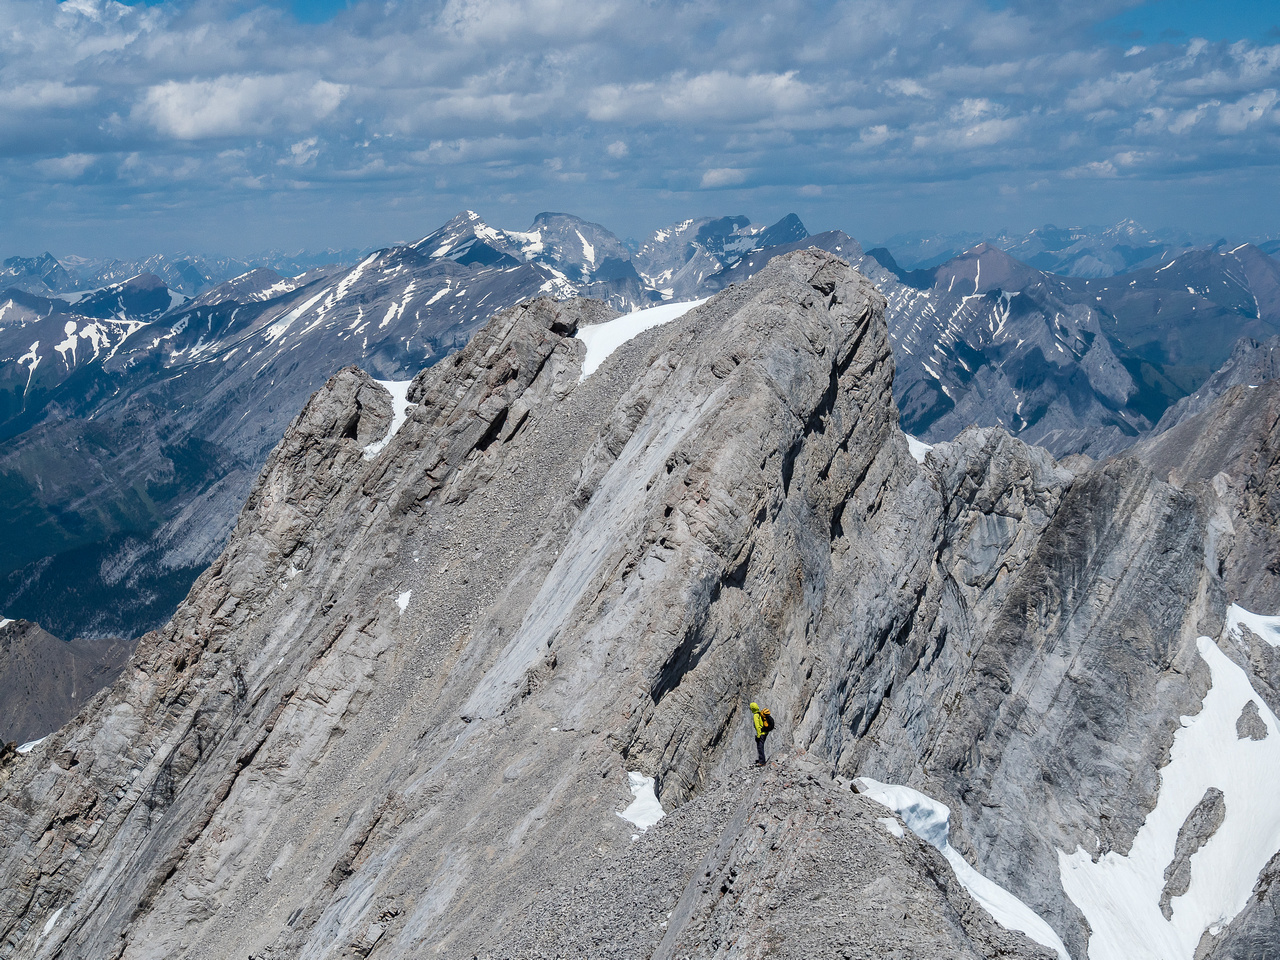 Wietse descends the very exposed ridge towards the north summit of Denny.